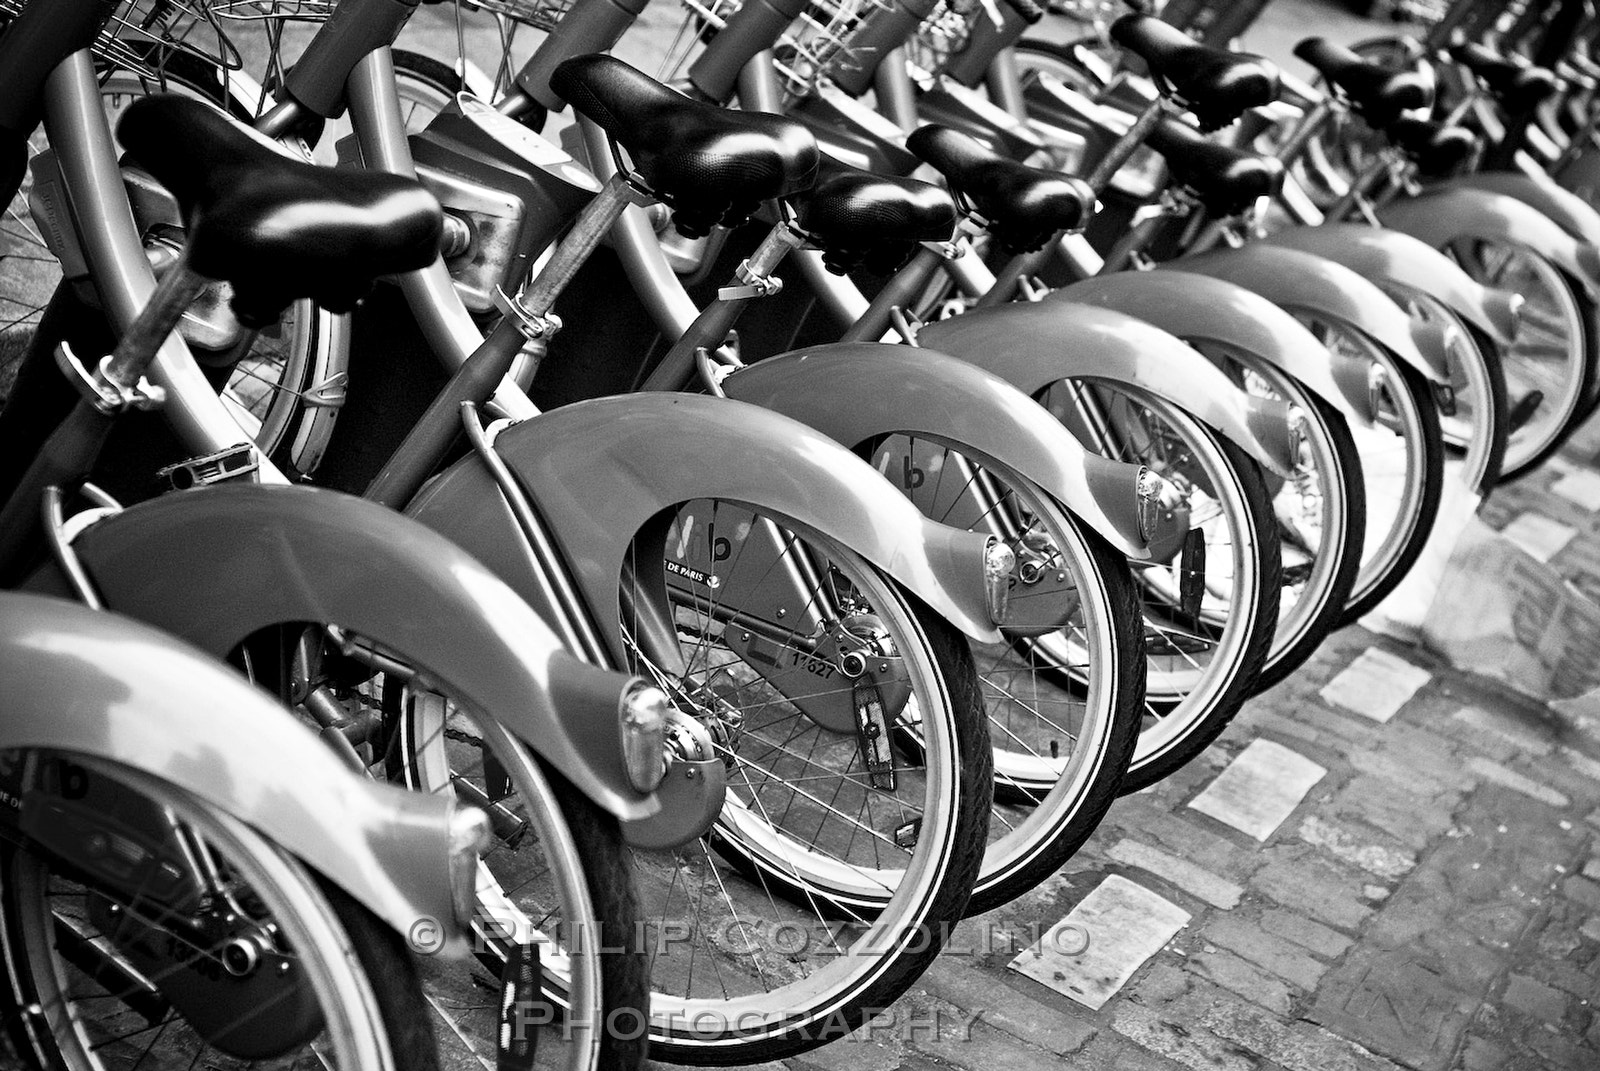 Photograph Paris Bikes by Philip Cozzolino on 500px